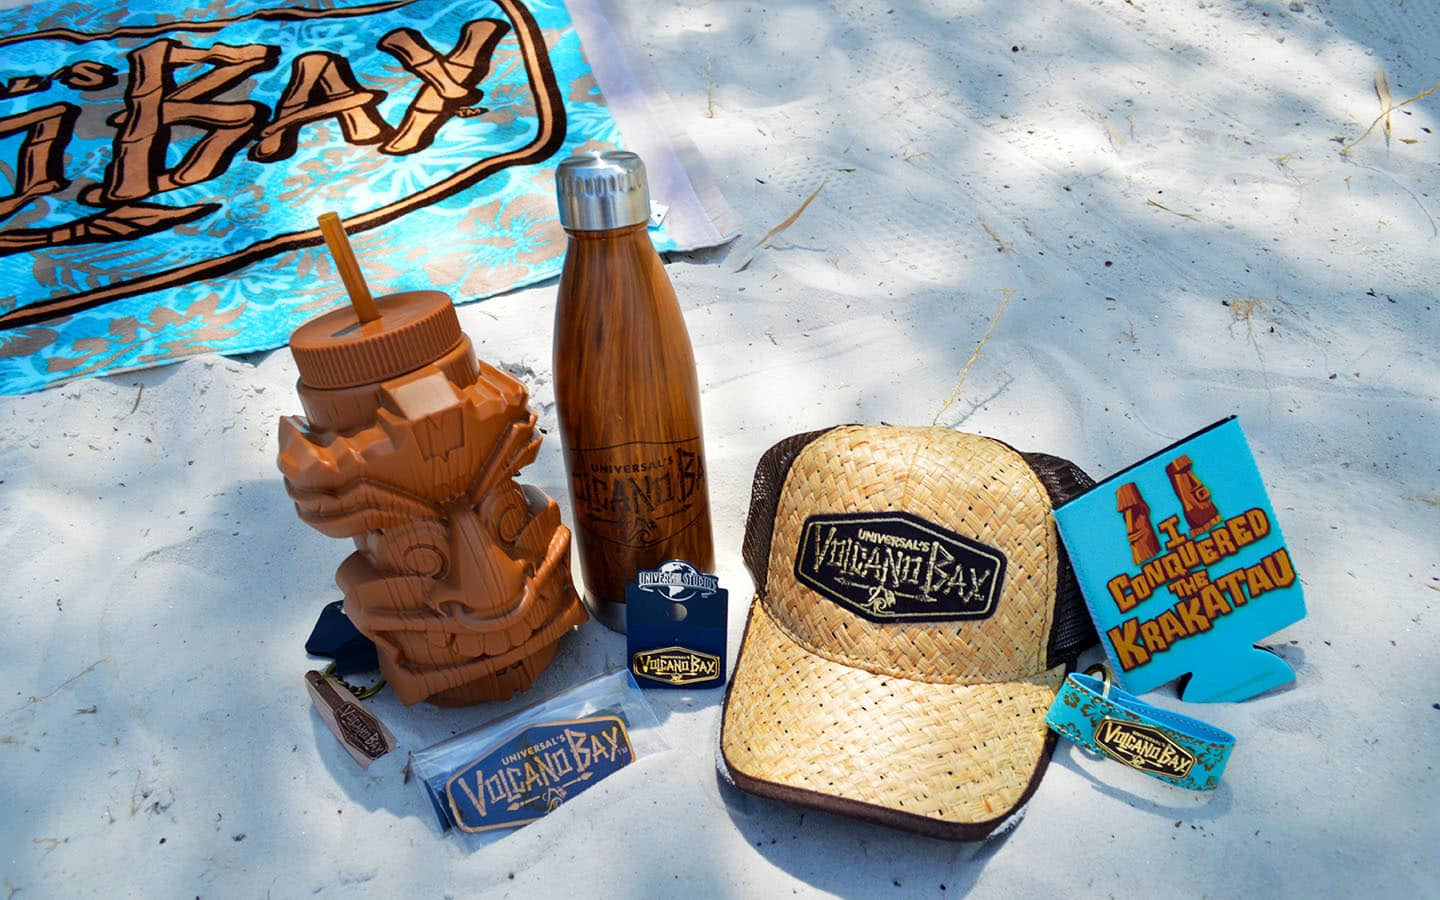 Volcano Bay merchandise revealed